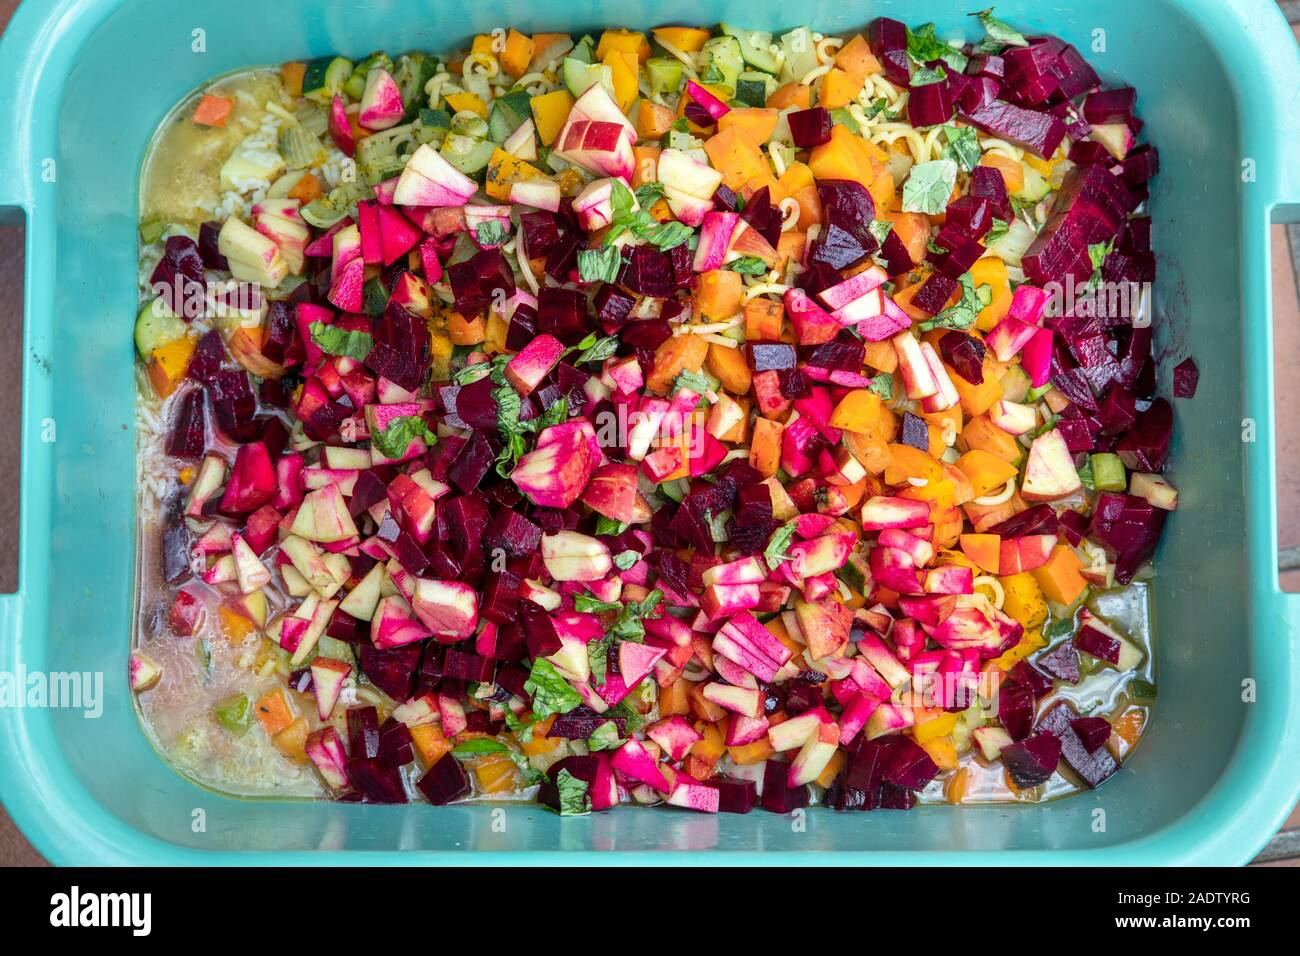 Topview Tub With Vegetables Fresh Fruits And Rice For